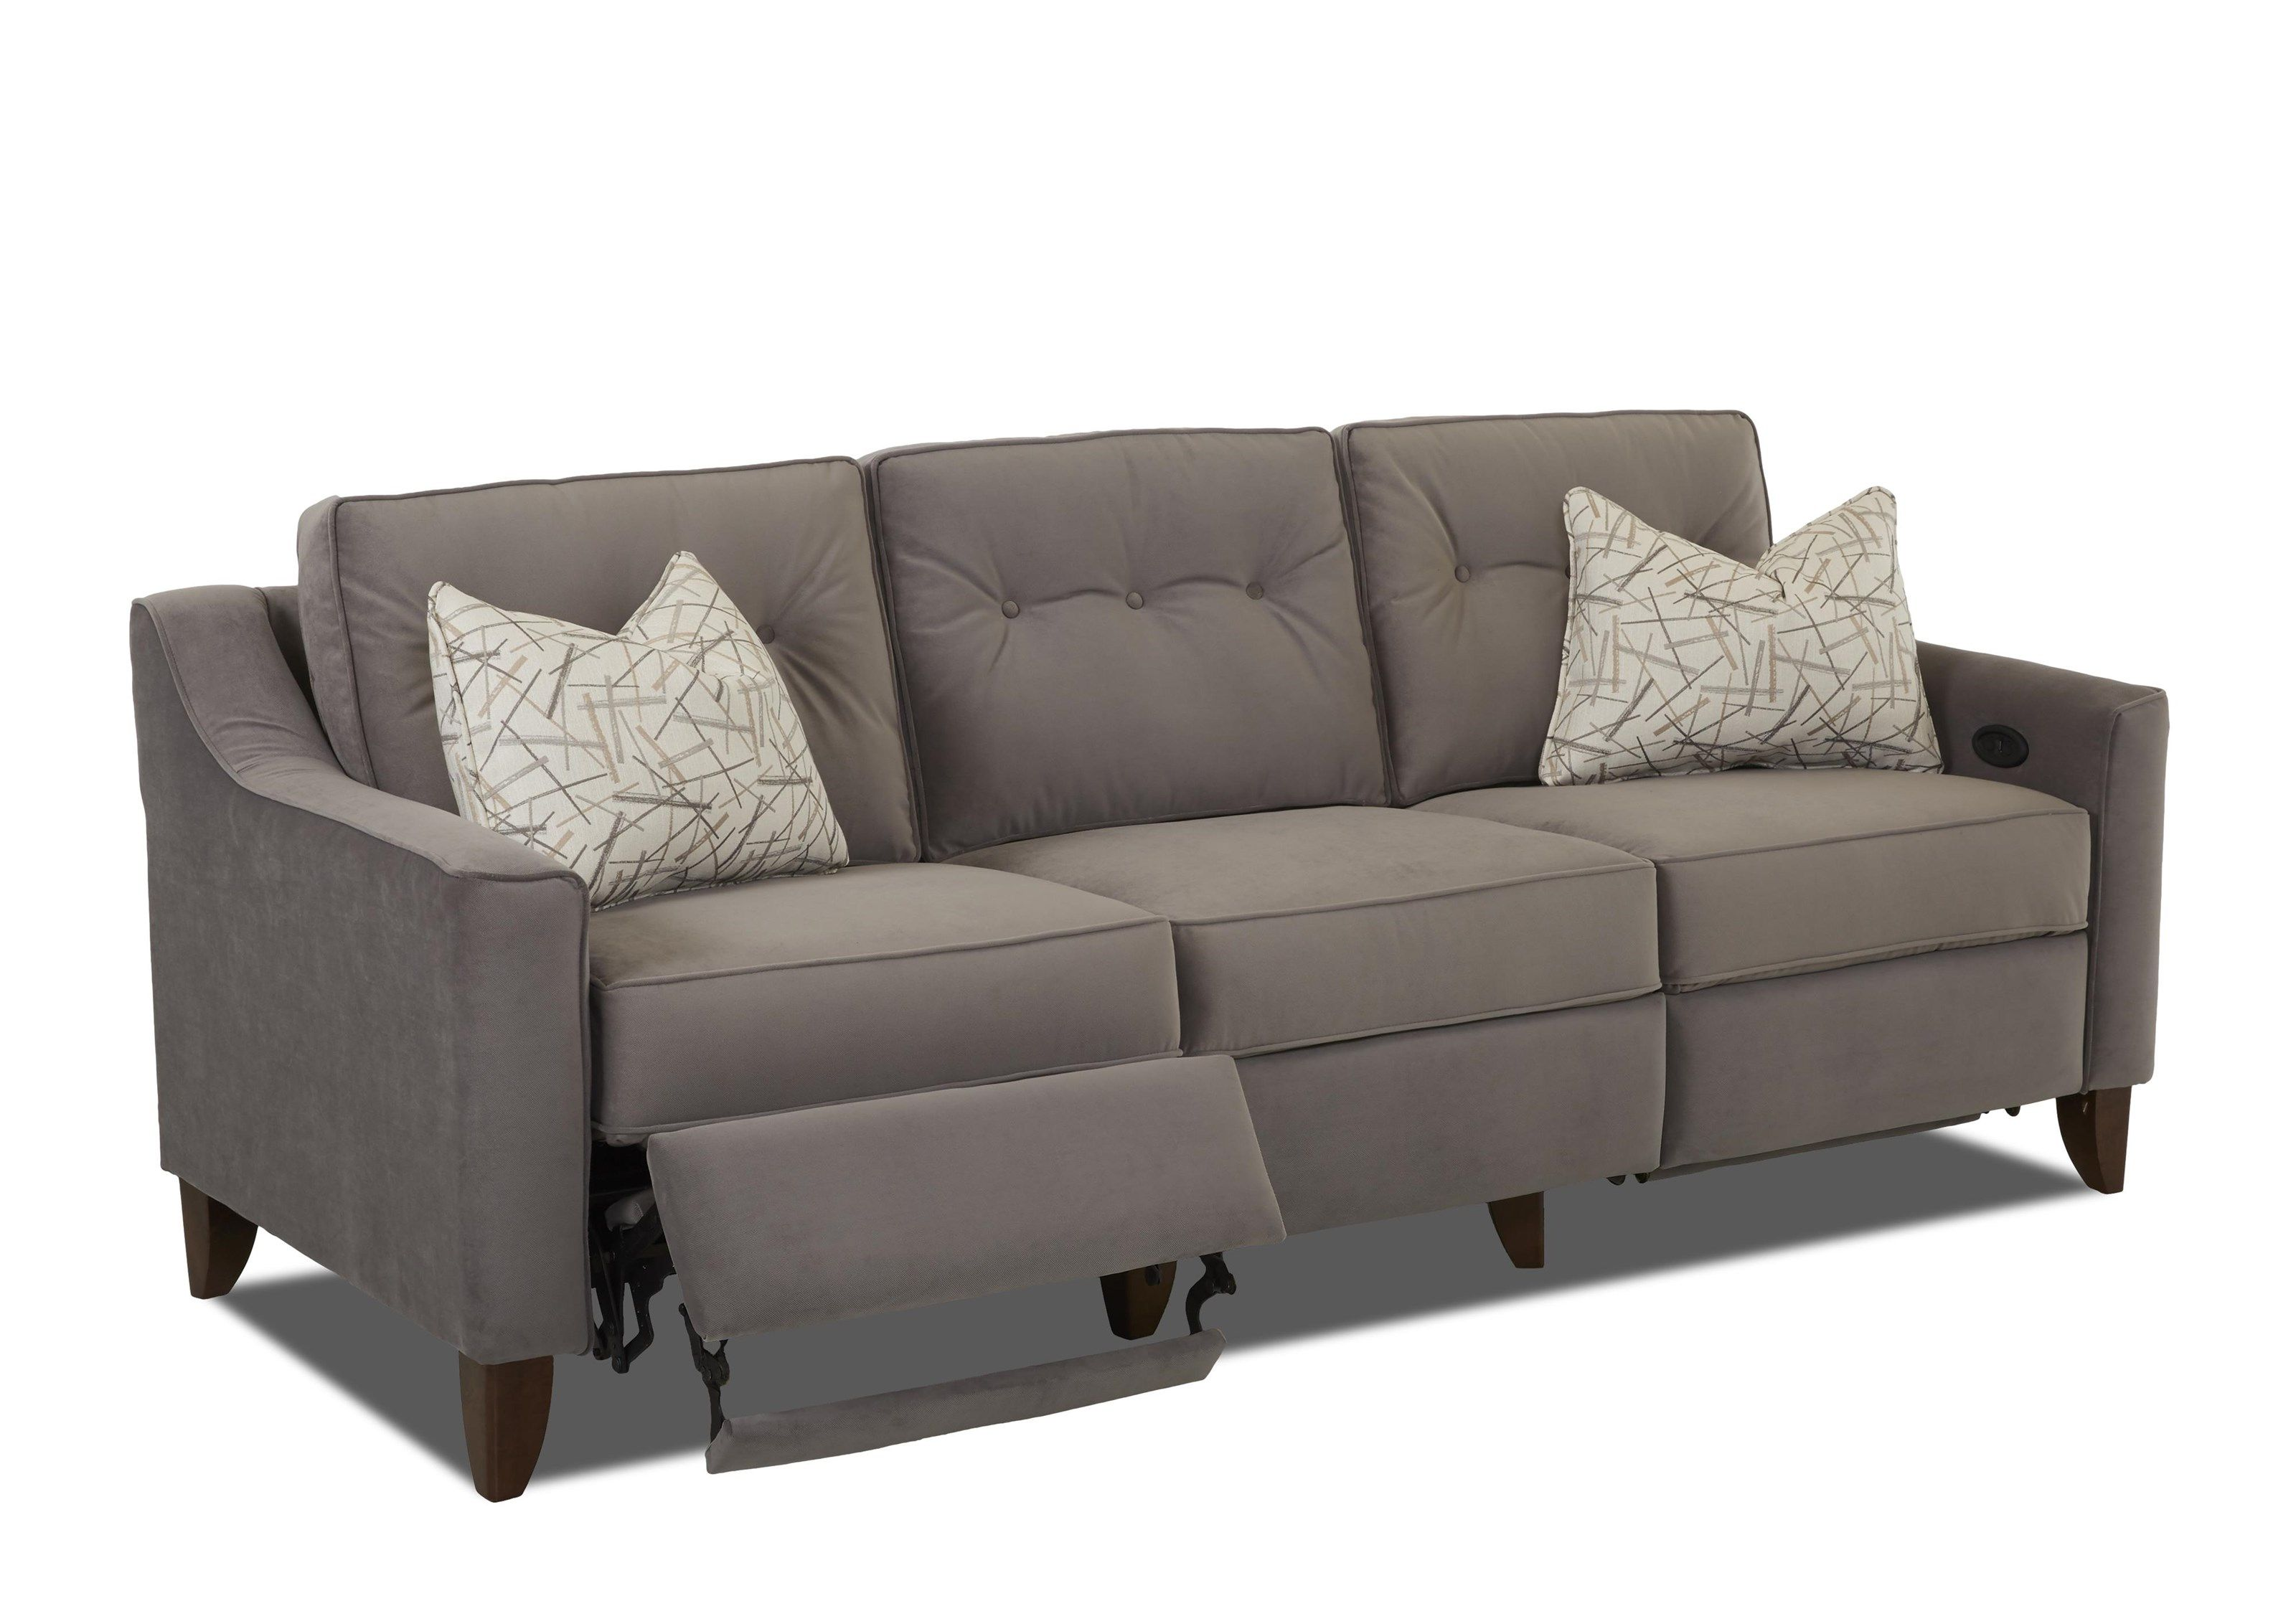 Two Cushion Power Reclining Sofa Cleaning Deals In Dubai Living Room Pinterest